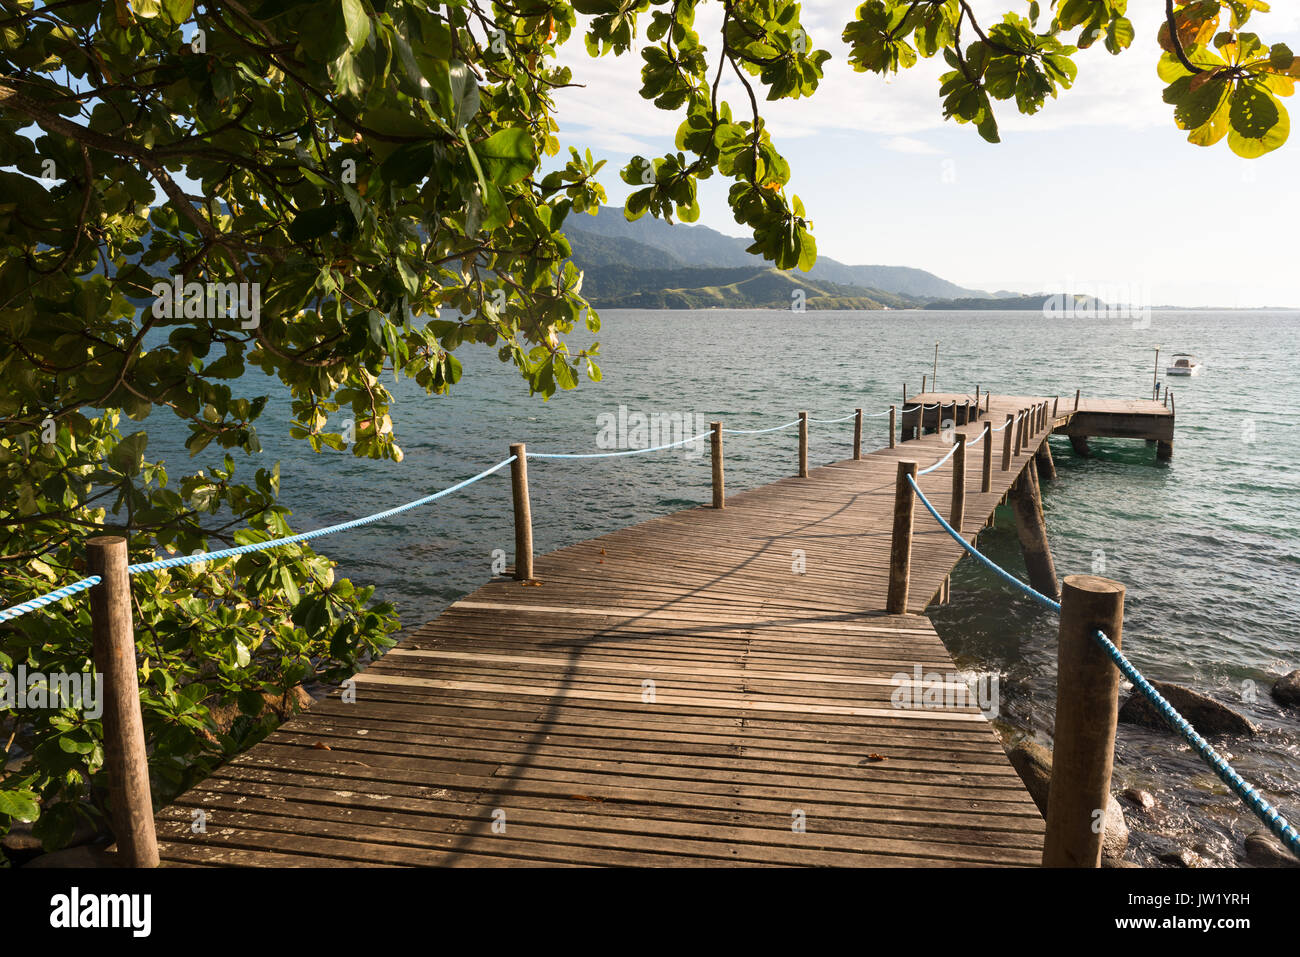 A wooden pier in Ilhabela, Brazil Stock Photo